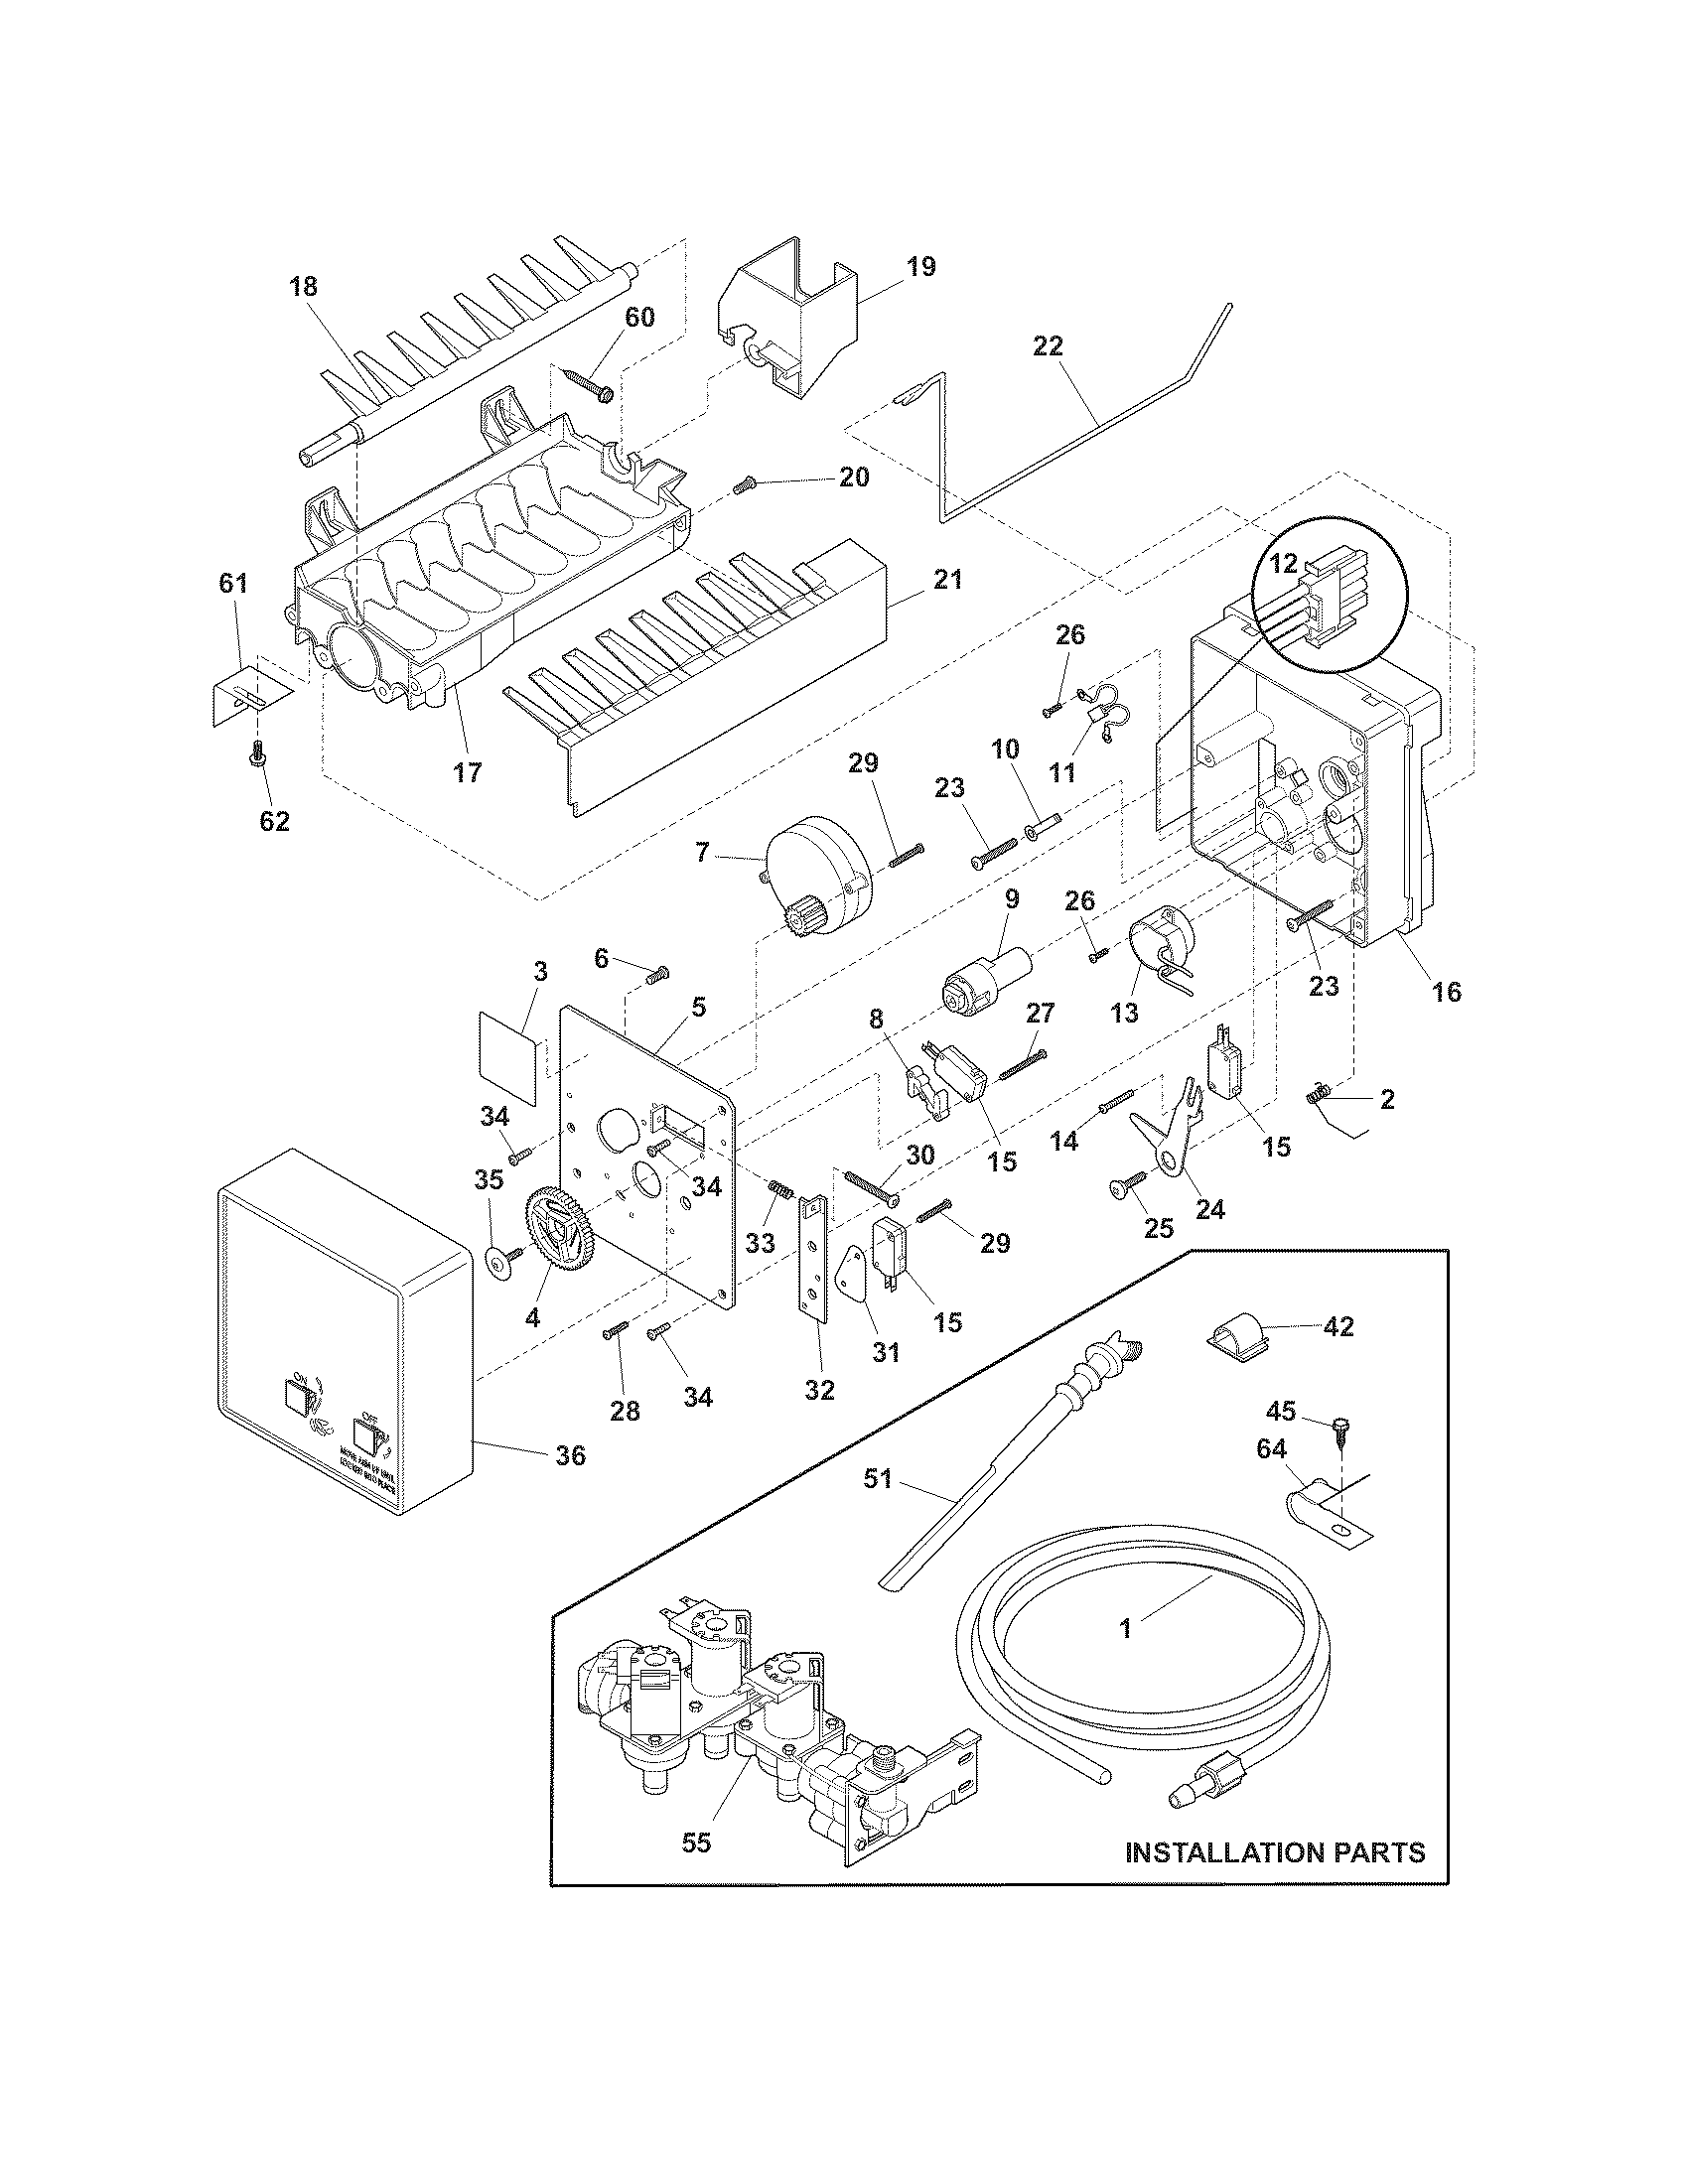 Frigidaire DGHS2644KF3 ice maker diagram